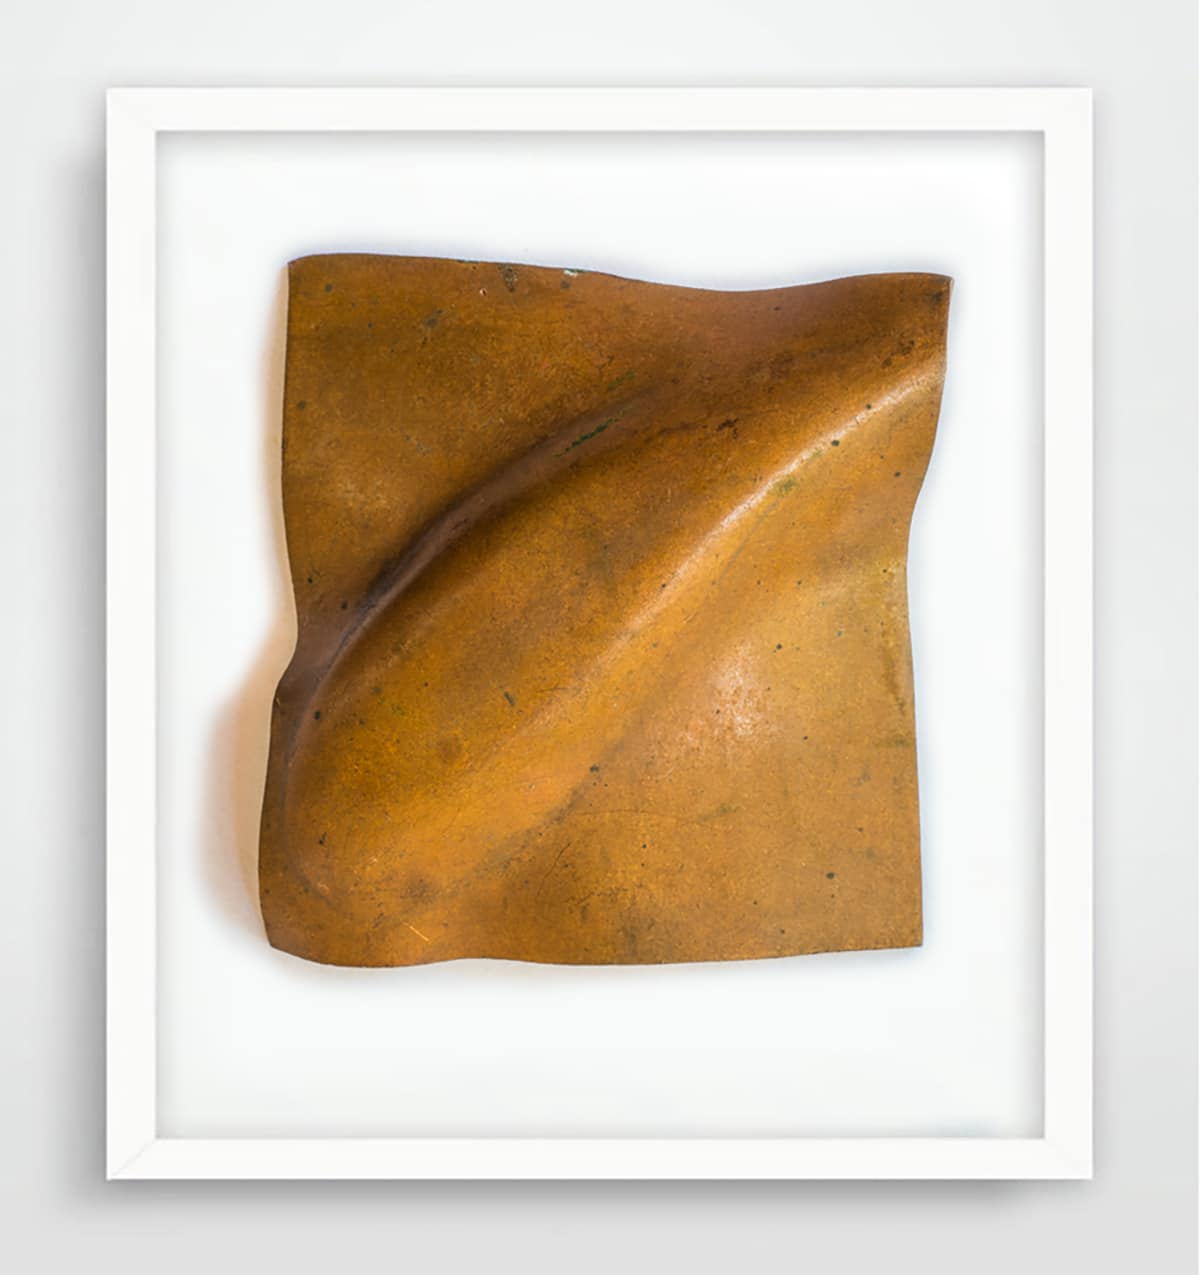 steel-napkin-framed-by-gregory-beylerian